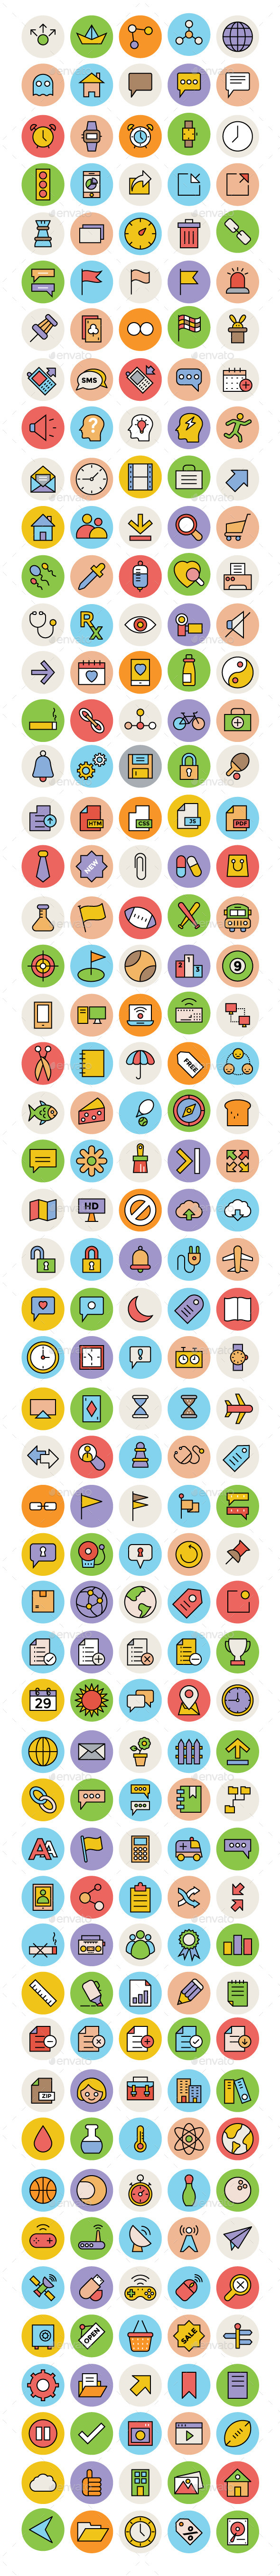 250+ Basic Essentials Vector Icons - Icons